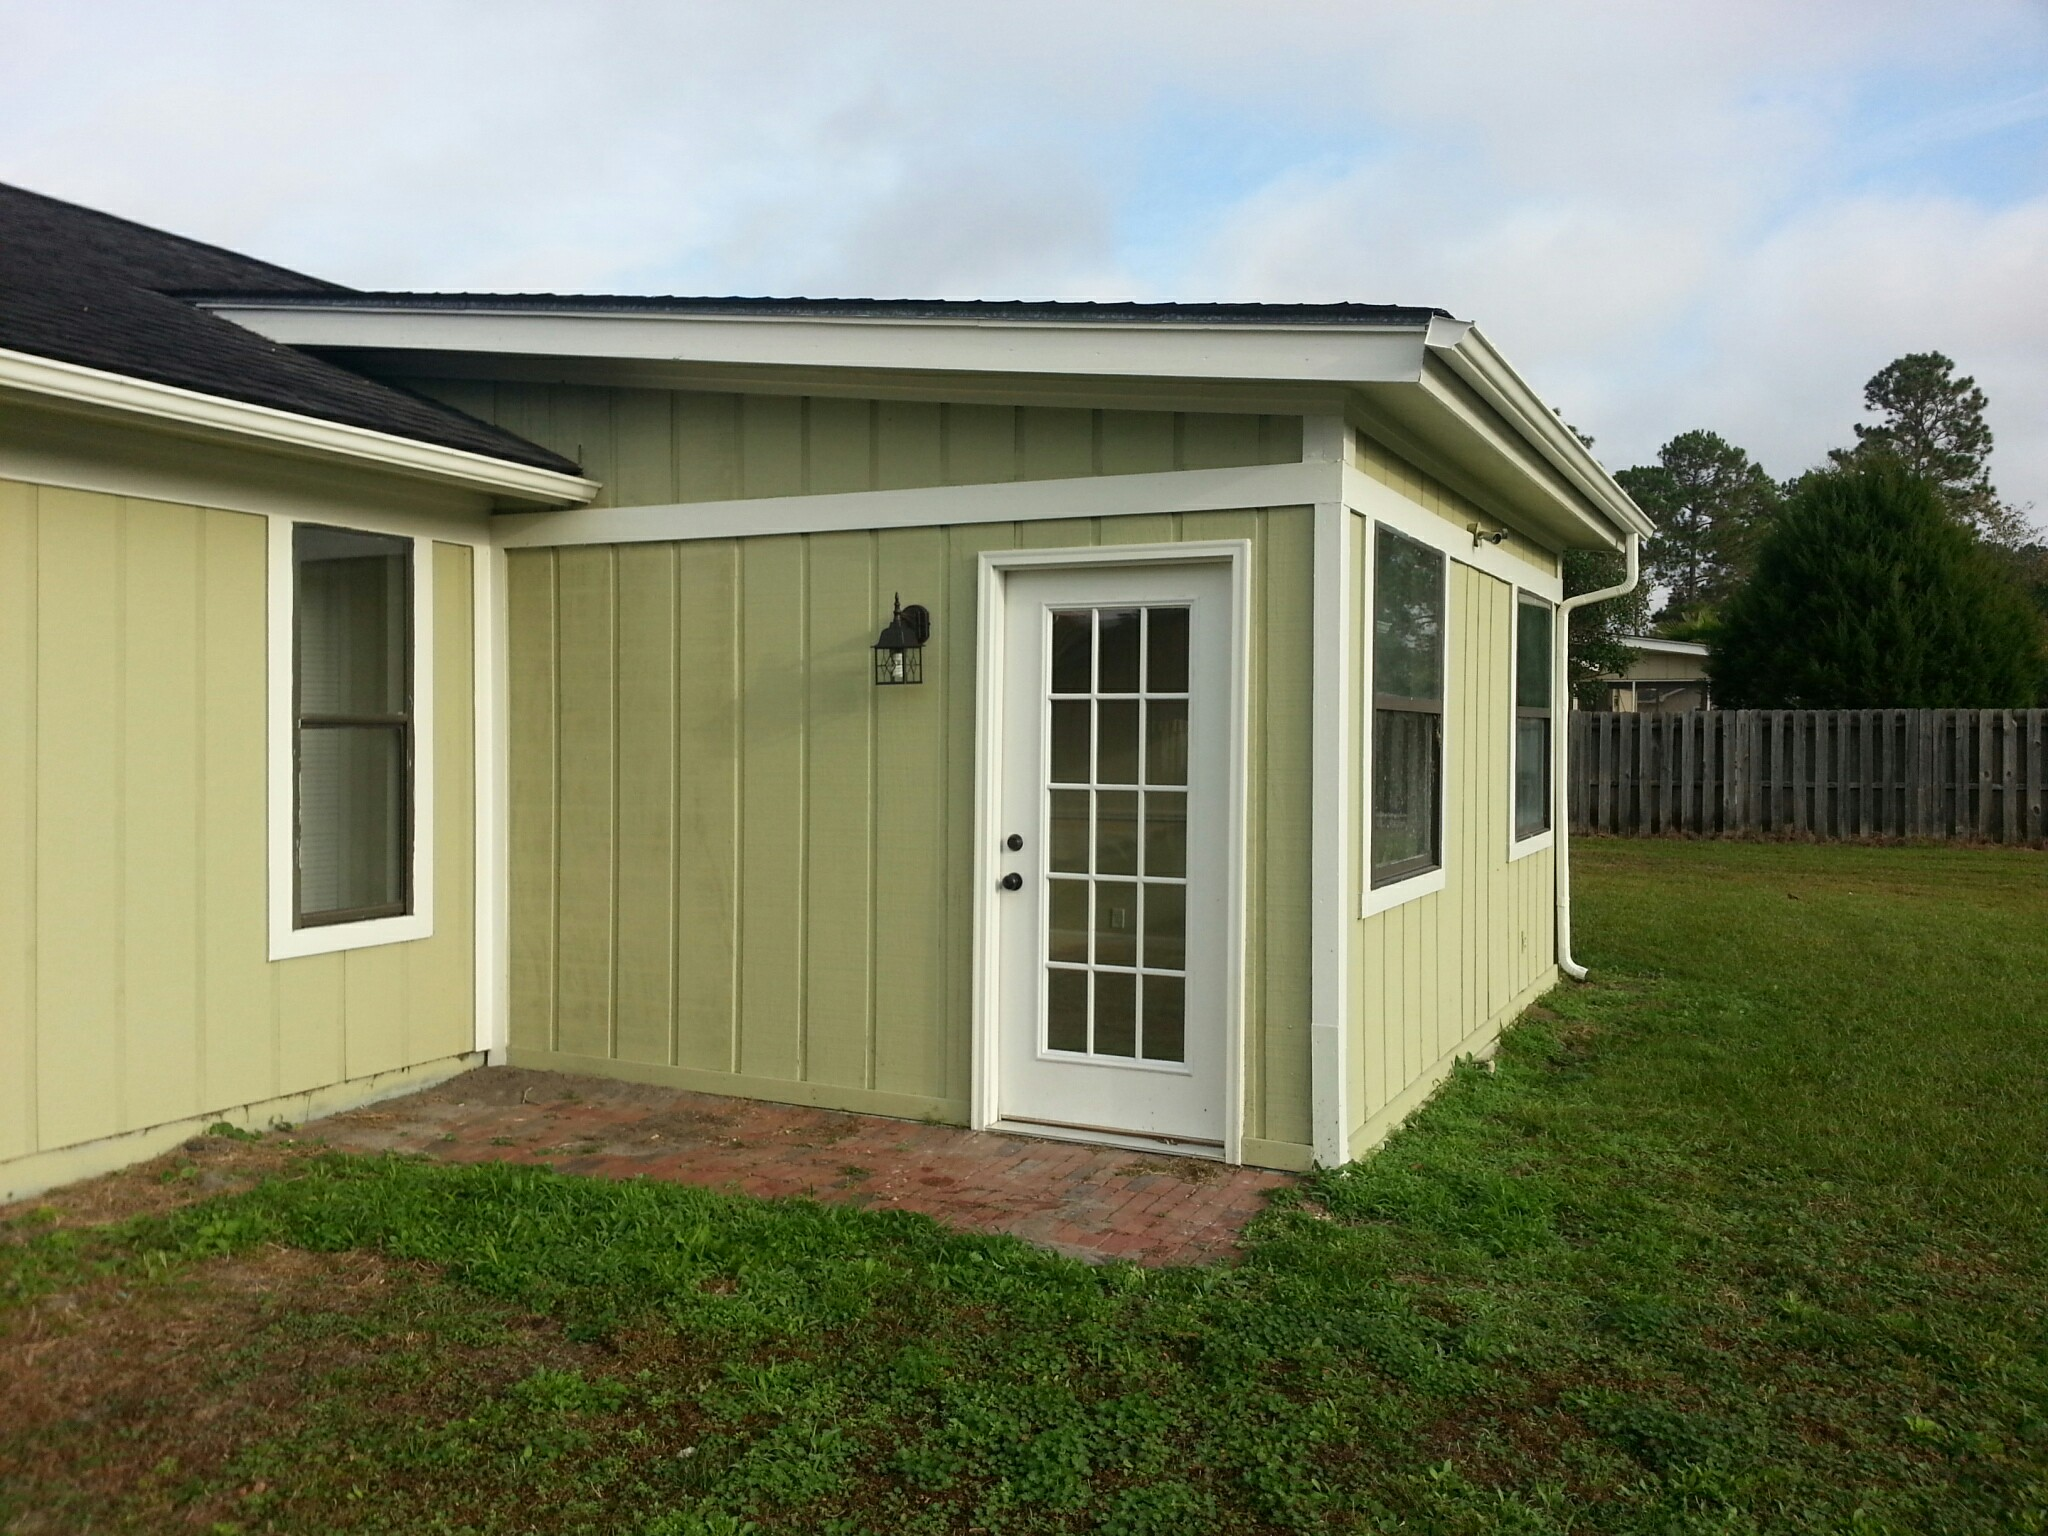 Enclosed Porch That Shouldn T Be 360 Home Inspections Llc